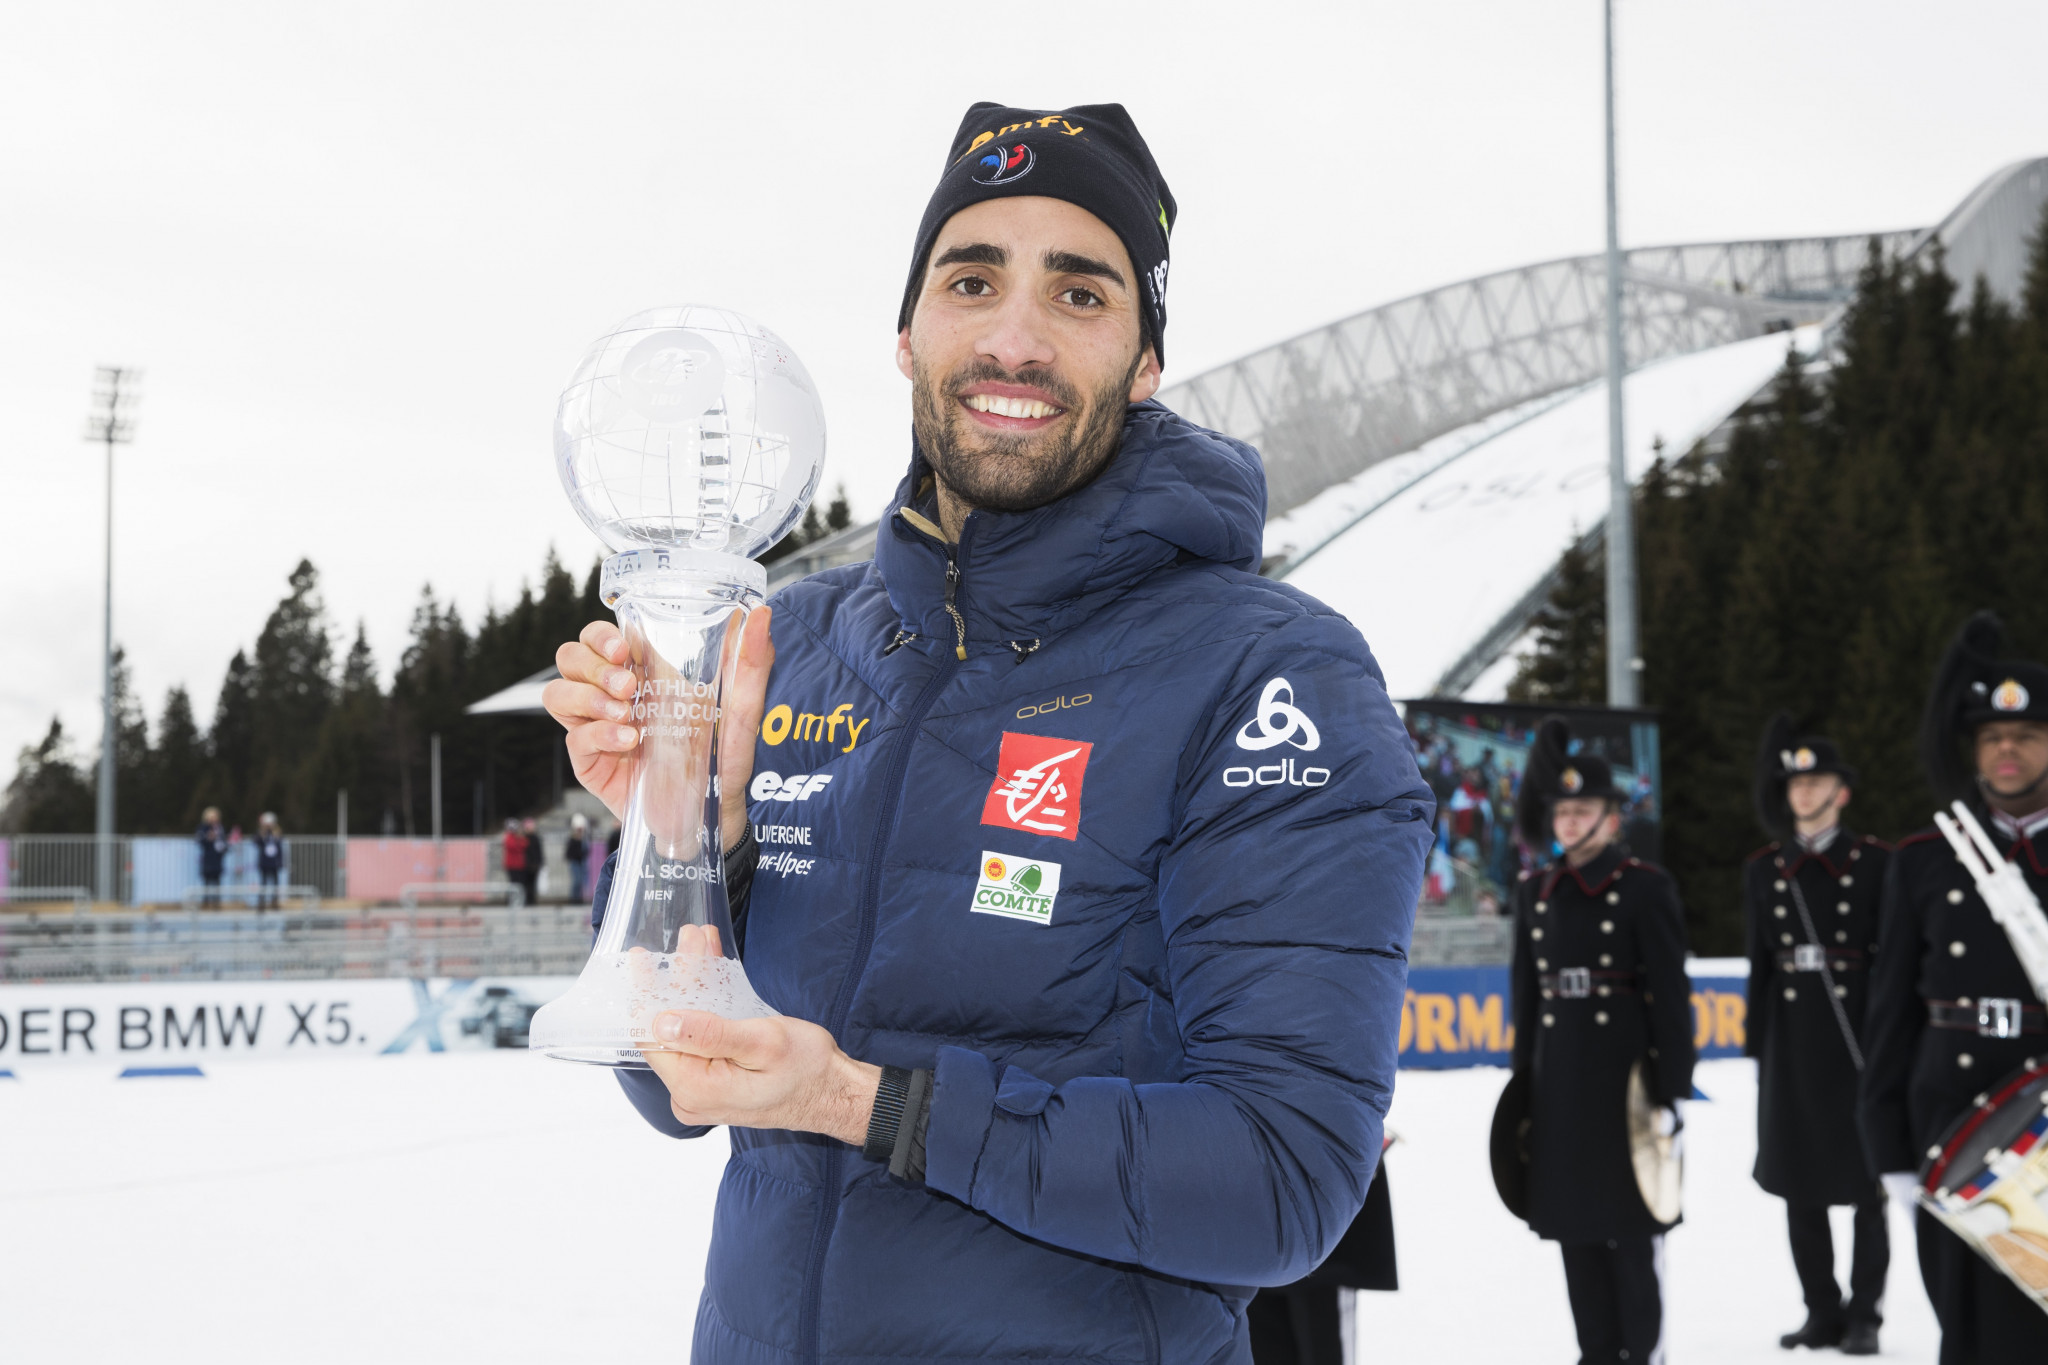 Martin Fourcade of France, pictured here in Oslo, Norway in March, is expected to carry his nation's hopes in Pyeongchang 2018 ©Getty Images